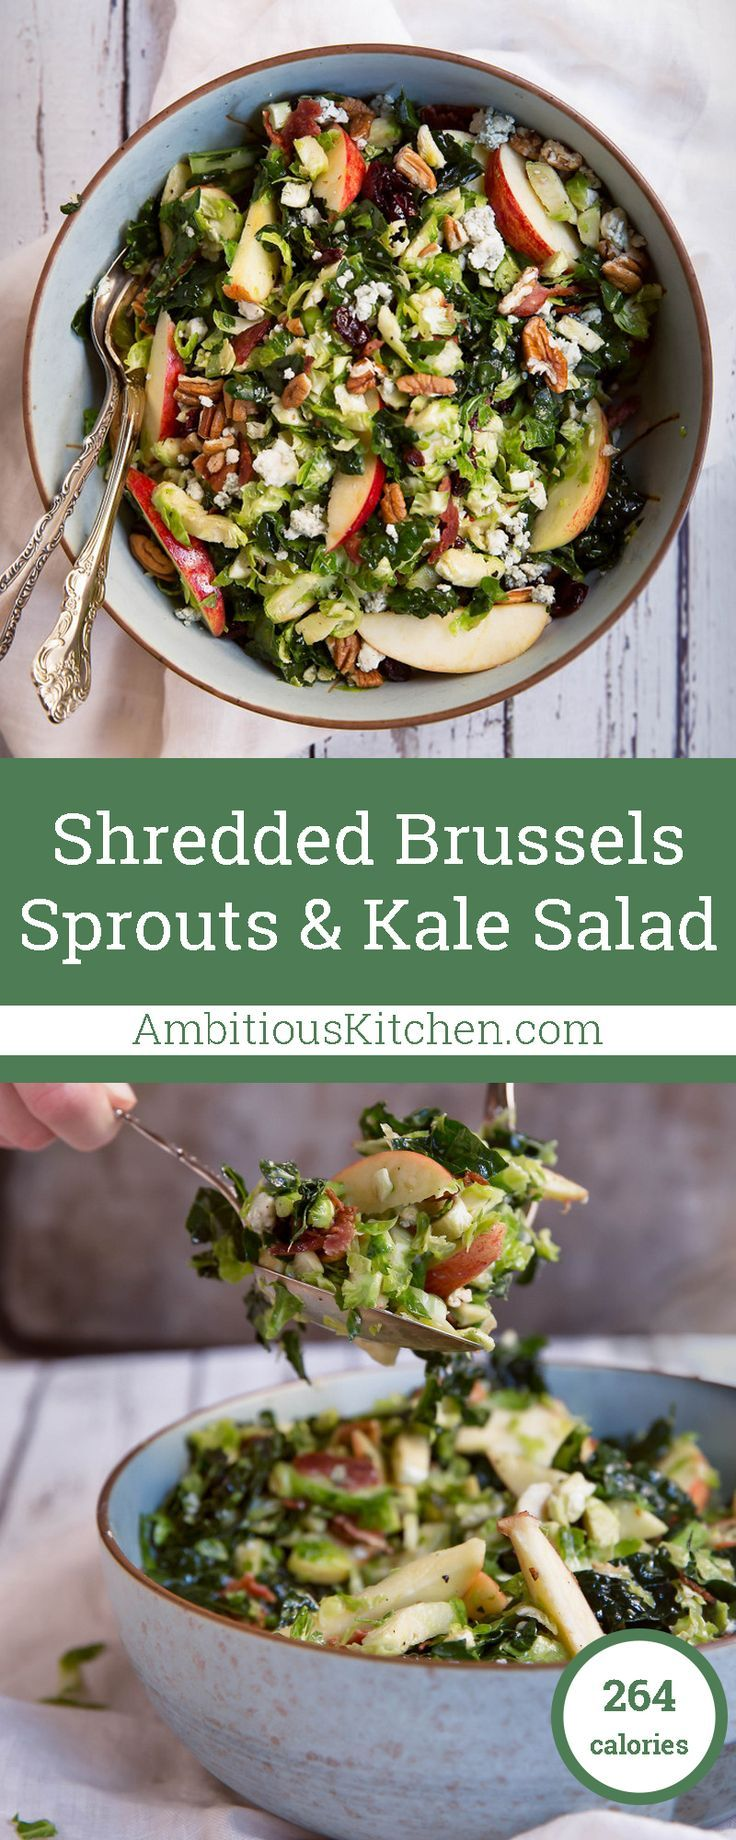 A delicious autumn inspired kale and brussels sprouts salad packed with fresh apple slices, dried cranberries, pecans and gorgonzola.